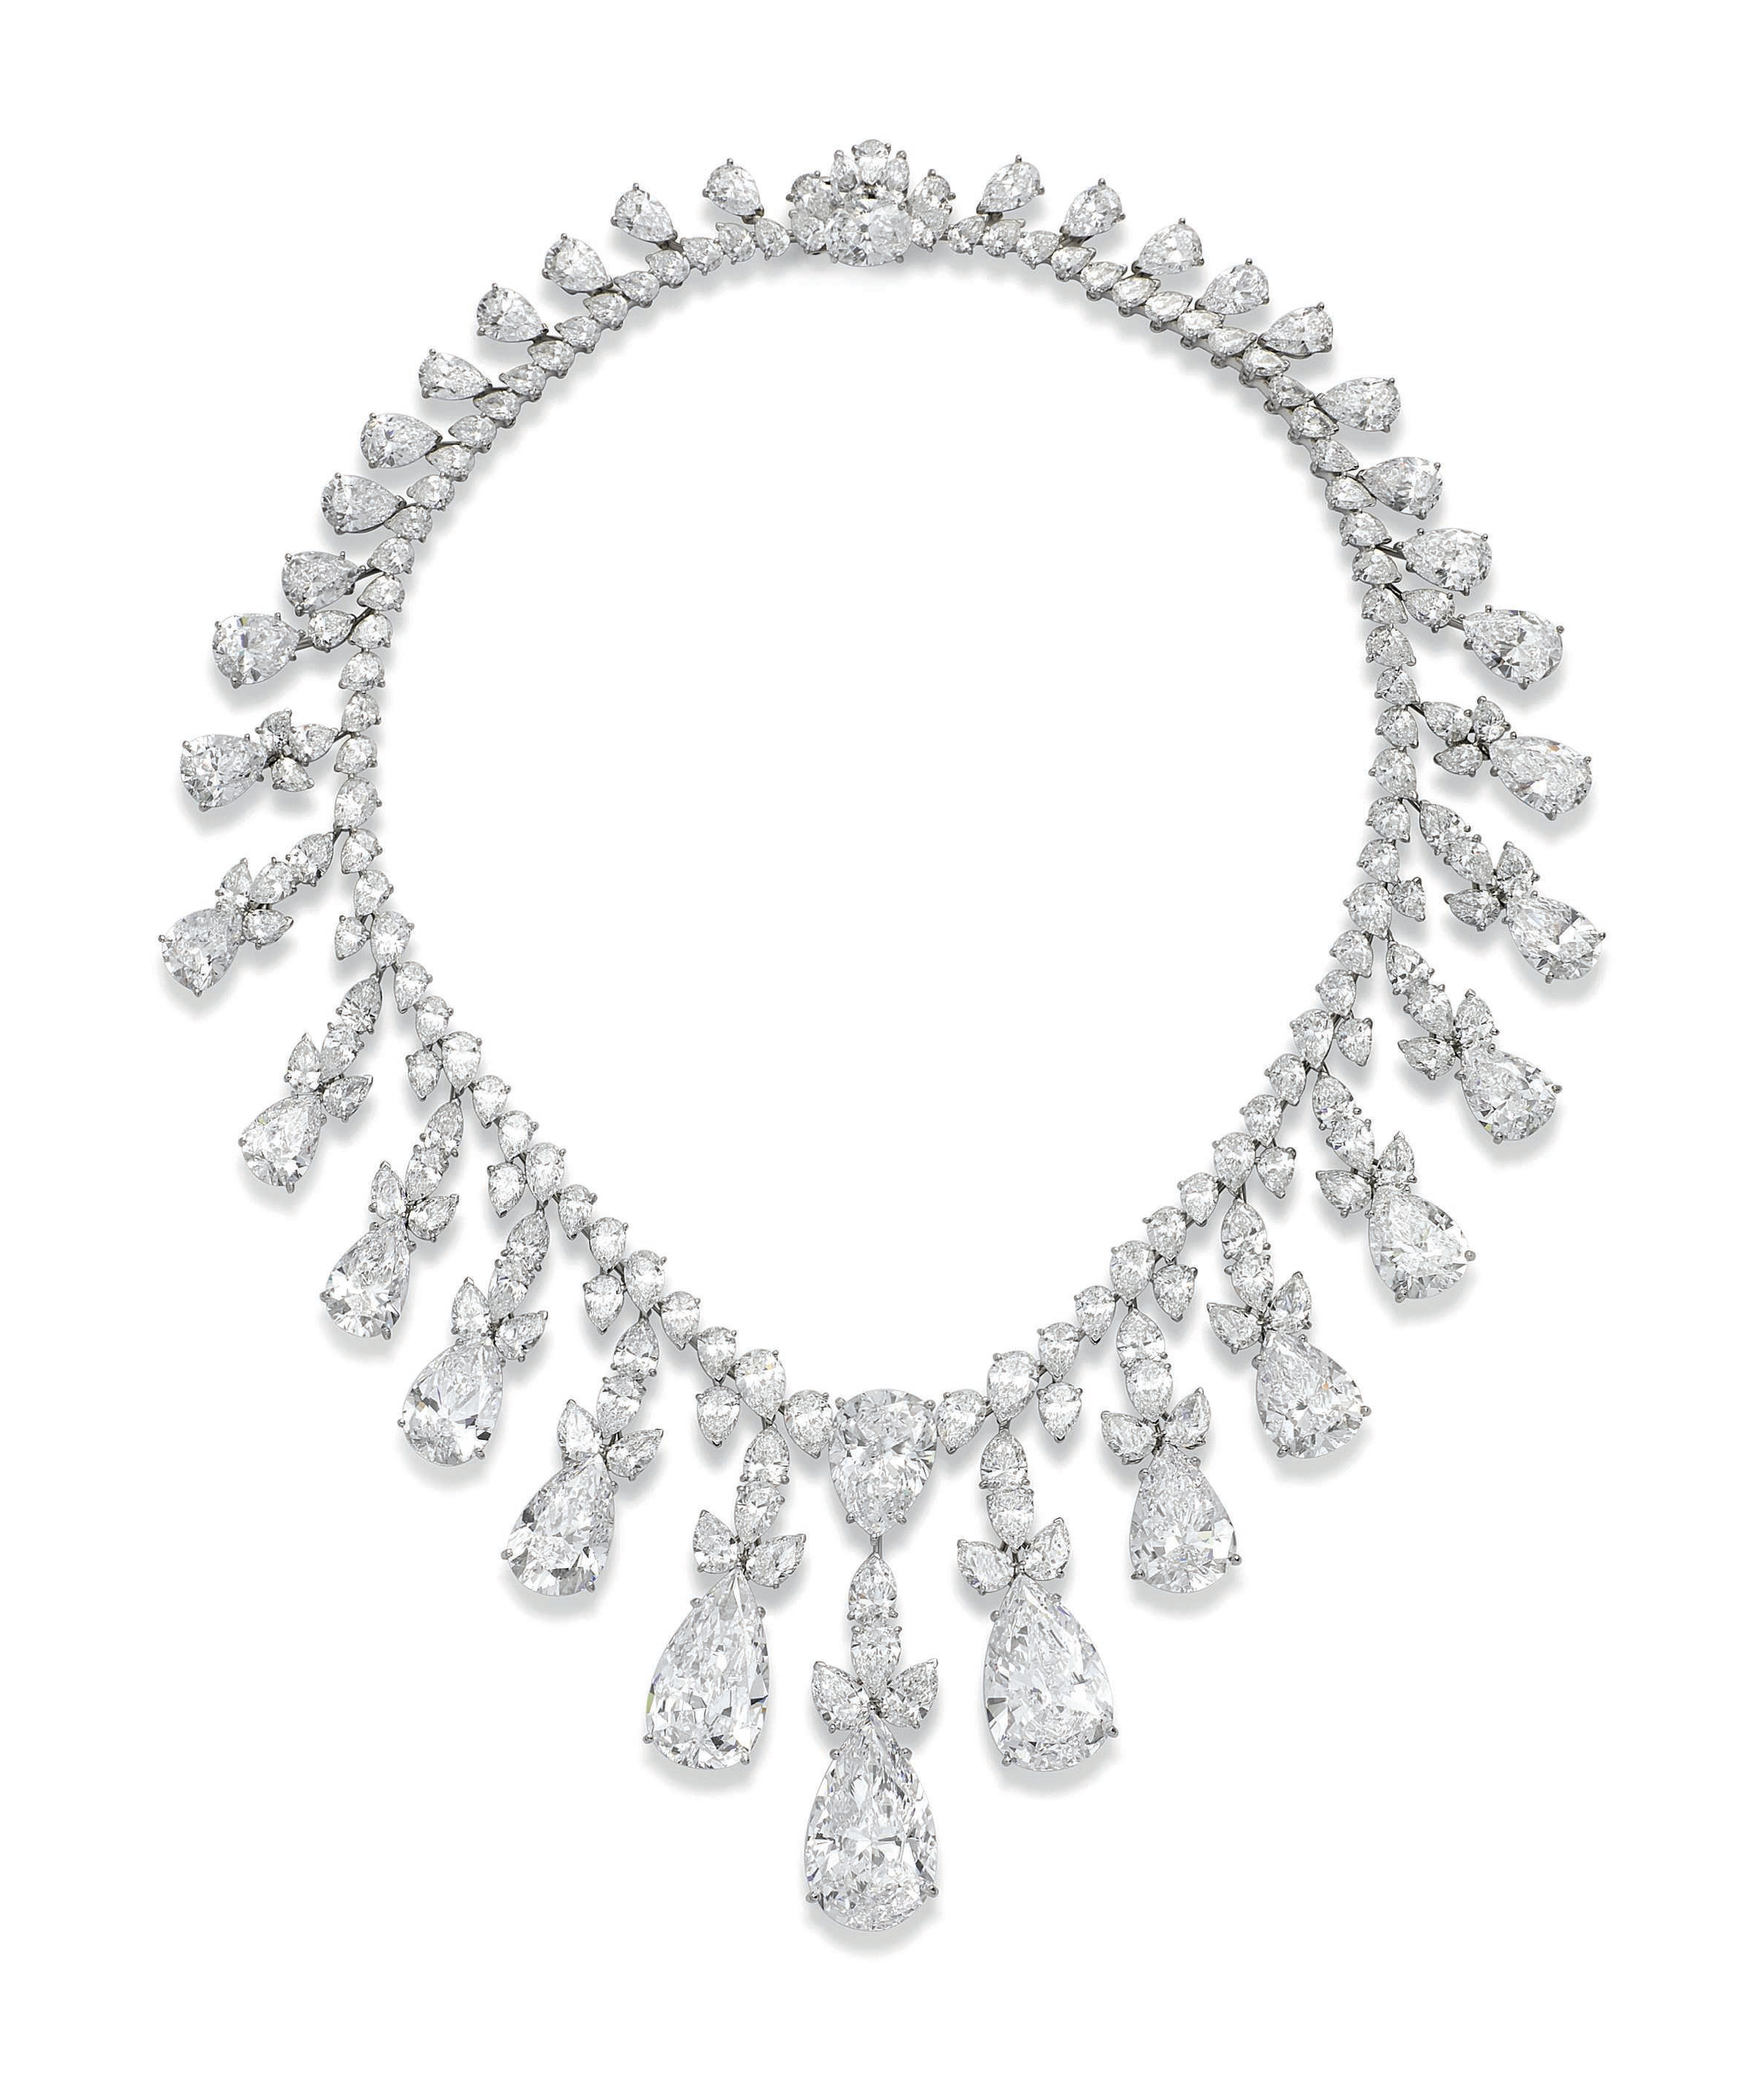 AN IMPRESSIVE DIAMOND FRINGE N